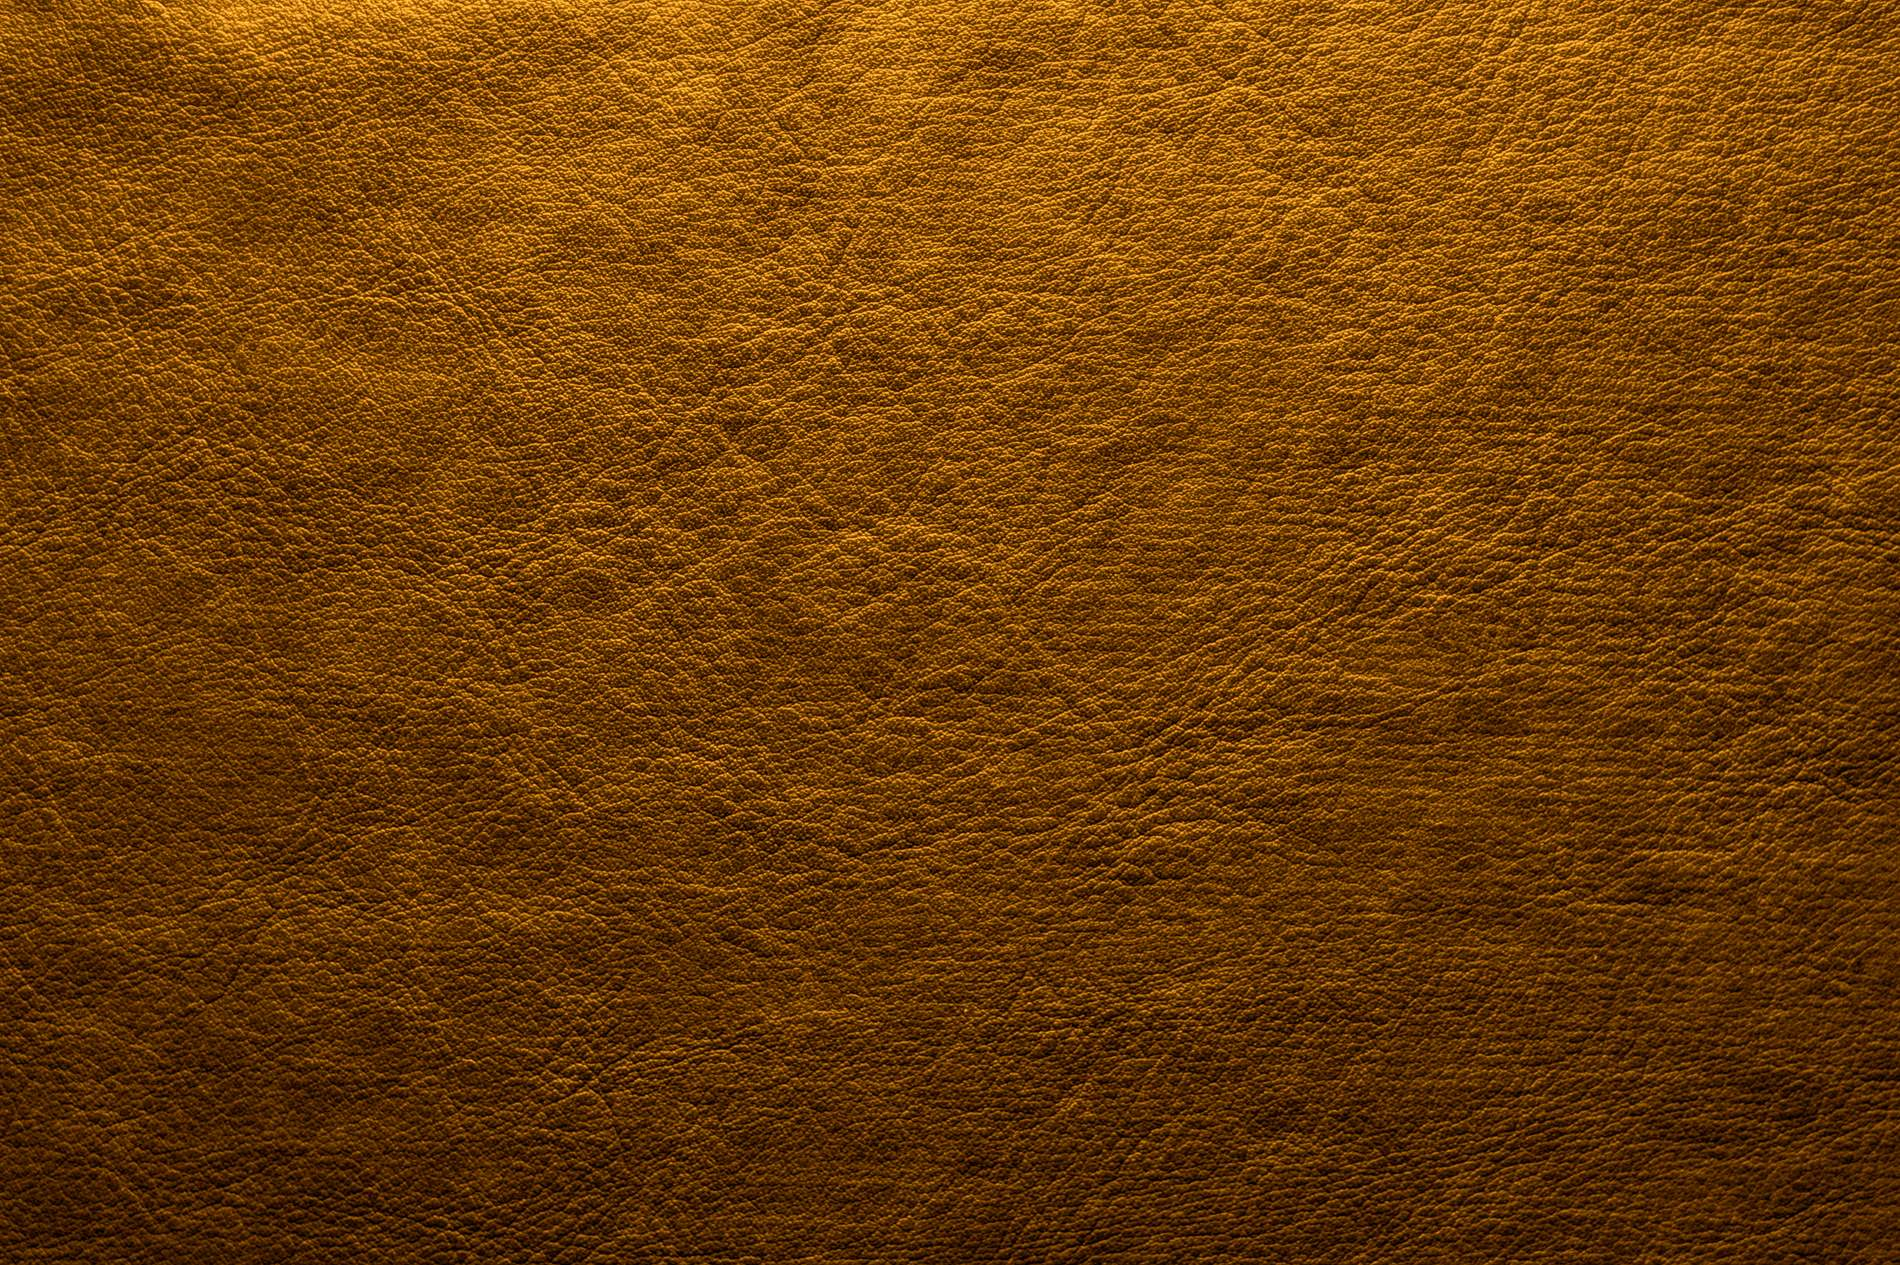 Dark Yellow Gold Leather Background Photohdx